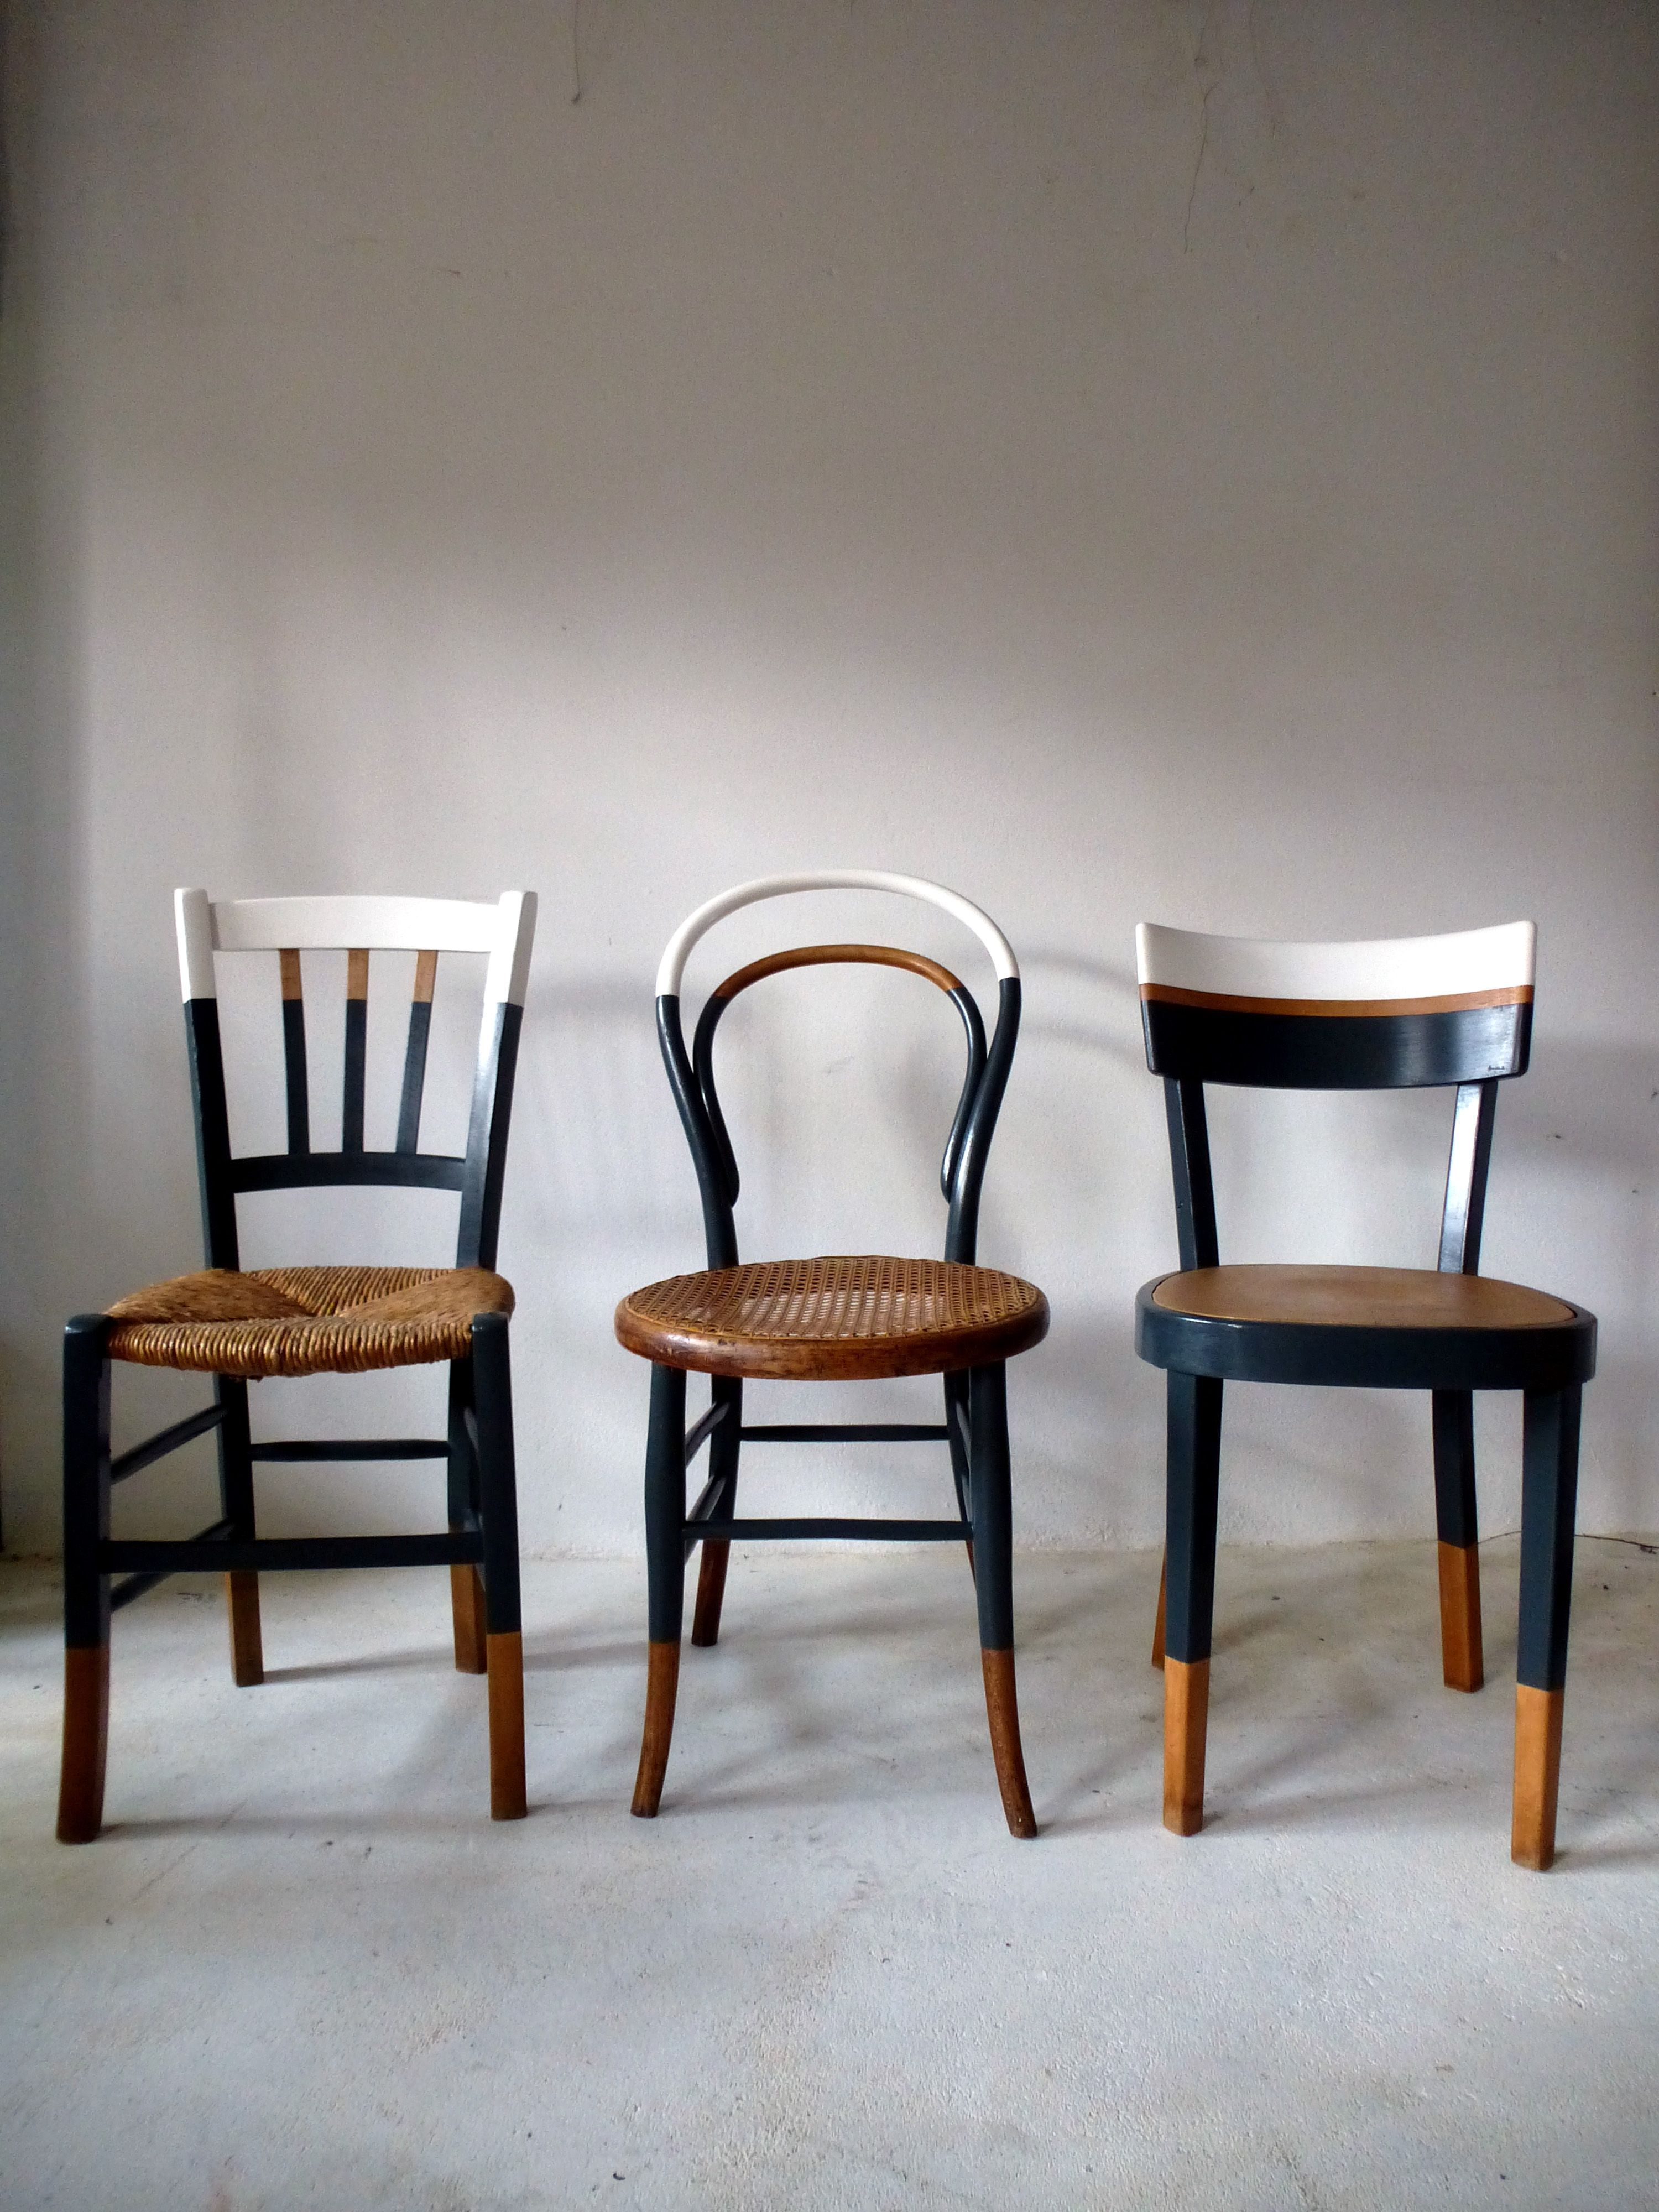 Ensemble De 6 Chaises Anciennes Depareillees Vintage Cuisine Bistrot Reloo In 2020 Vintage Chairs Furniture Makeover Trendy Furniture